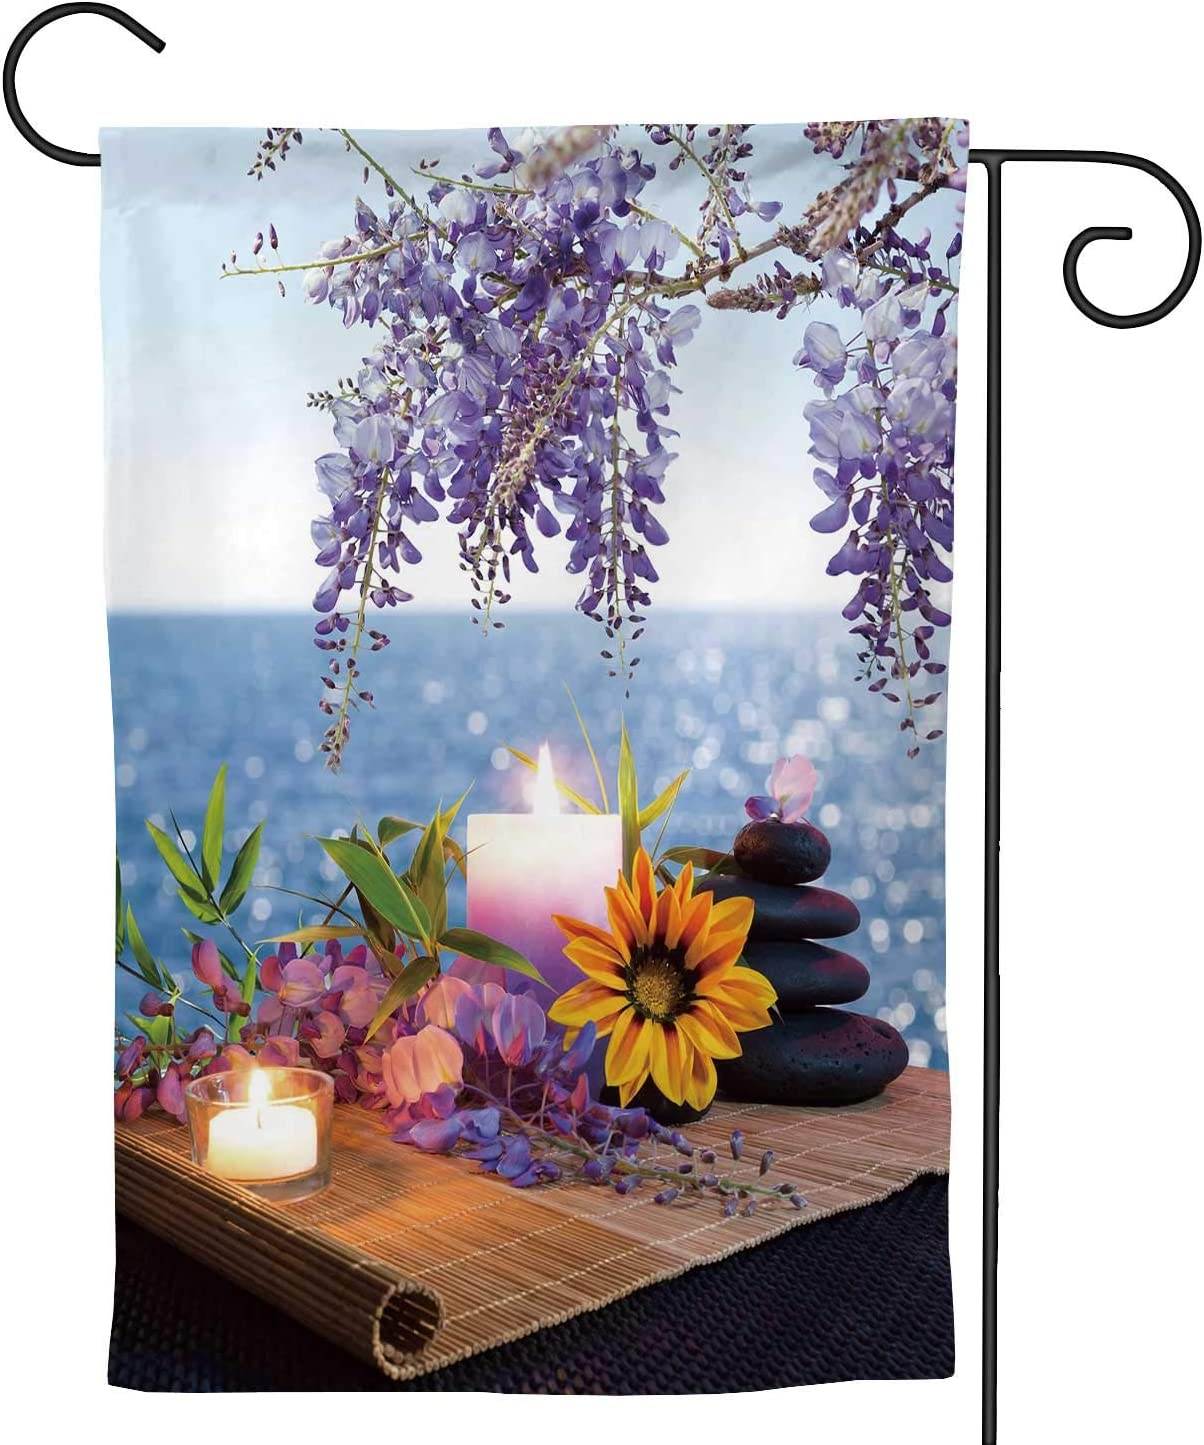 C COABALLA Massage Stones with dais and Wisteria The Seabed Back,Welcome Garden Flag Double Sided Outdoor Decoration 12.5''x18''